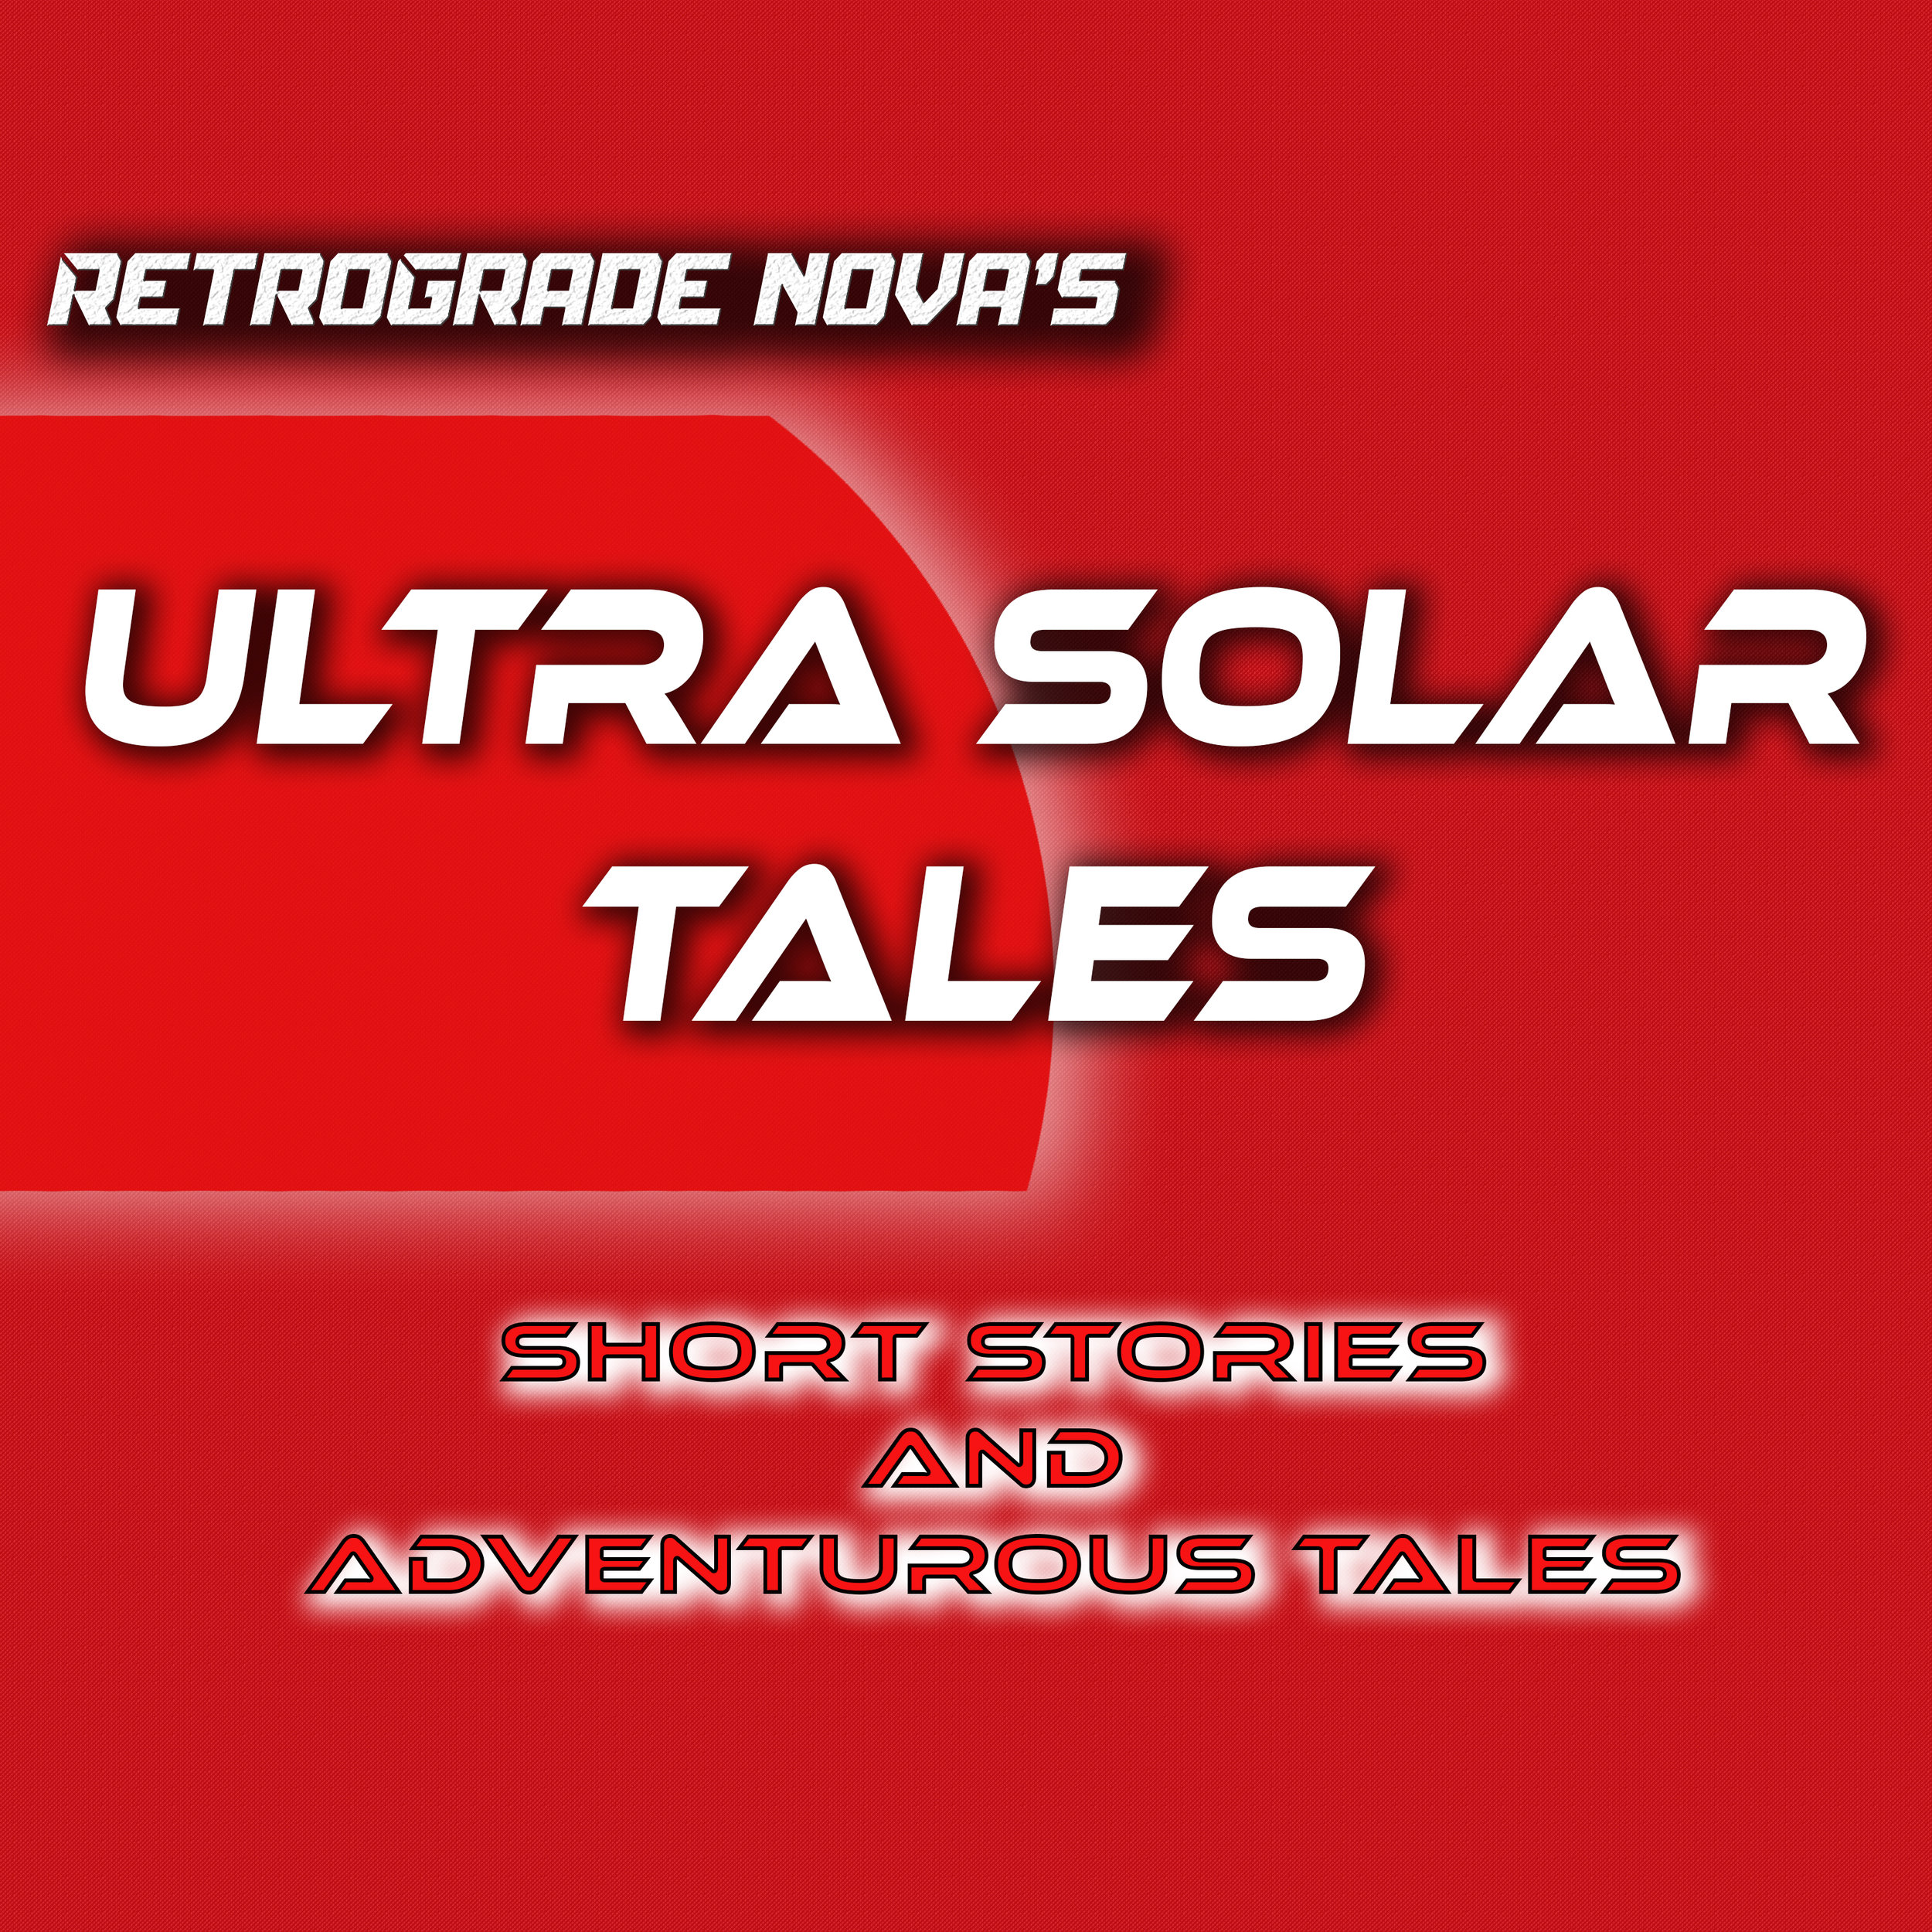 UltraSolarTalesbc.jpg